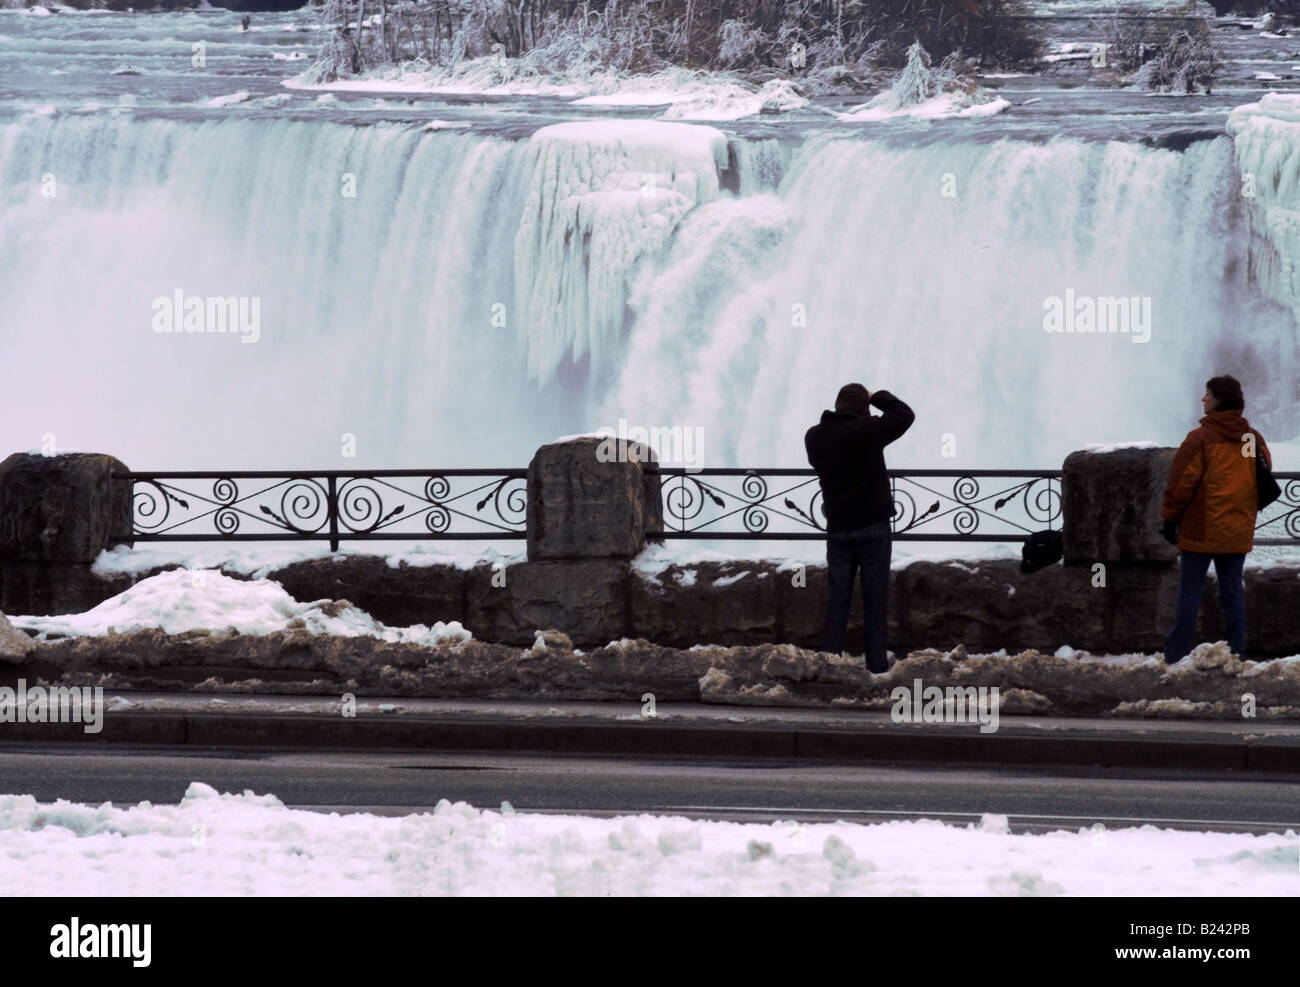 Tourists photographing American Falls of Niagara Falls in Winter - Stock Image